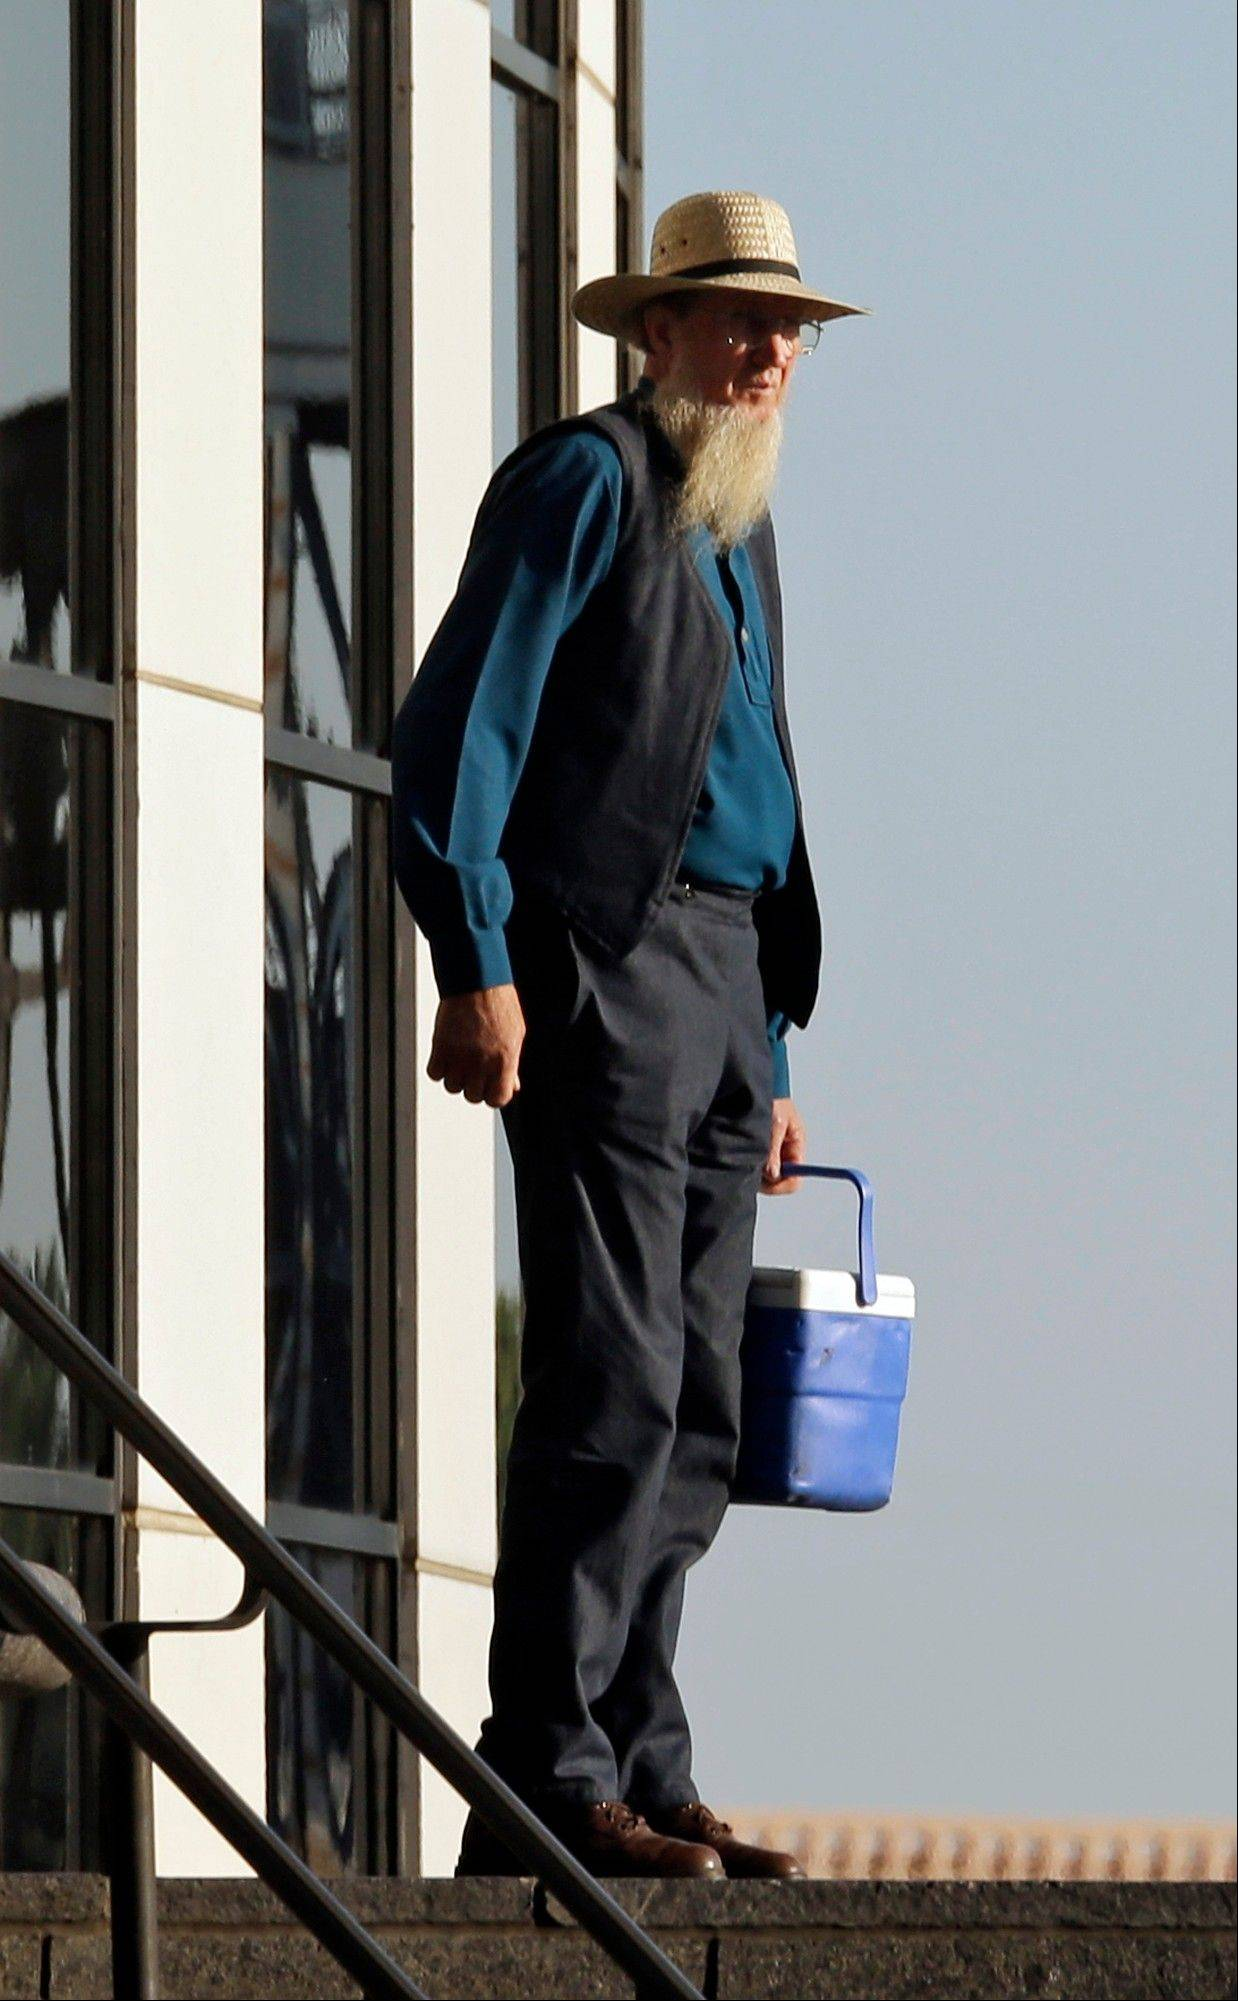 An Amish man leaves the United States Court House in Cleveland Wednesday.